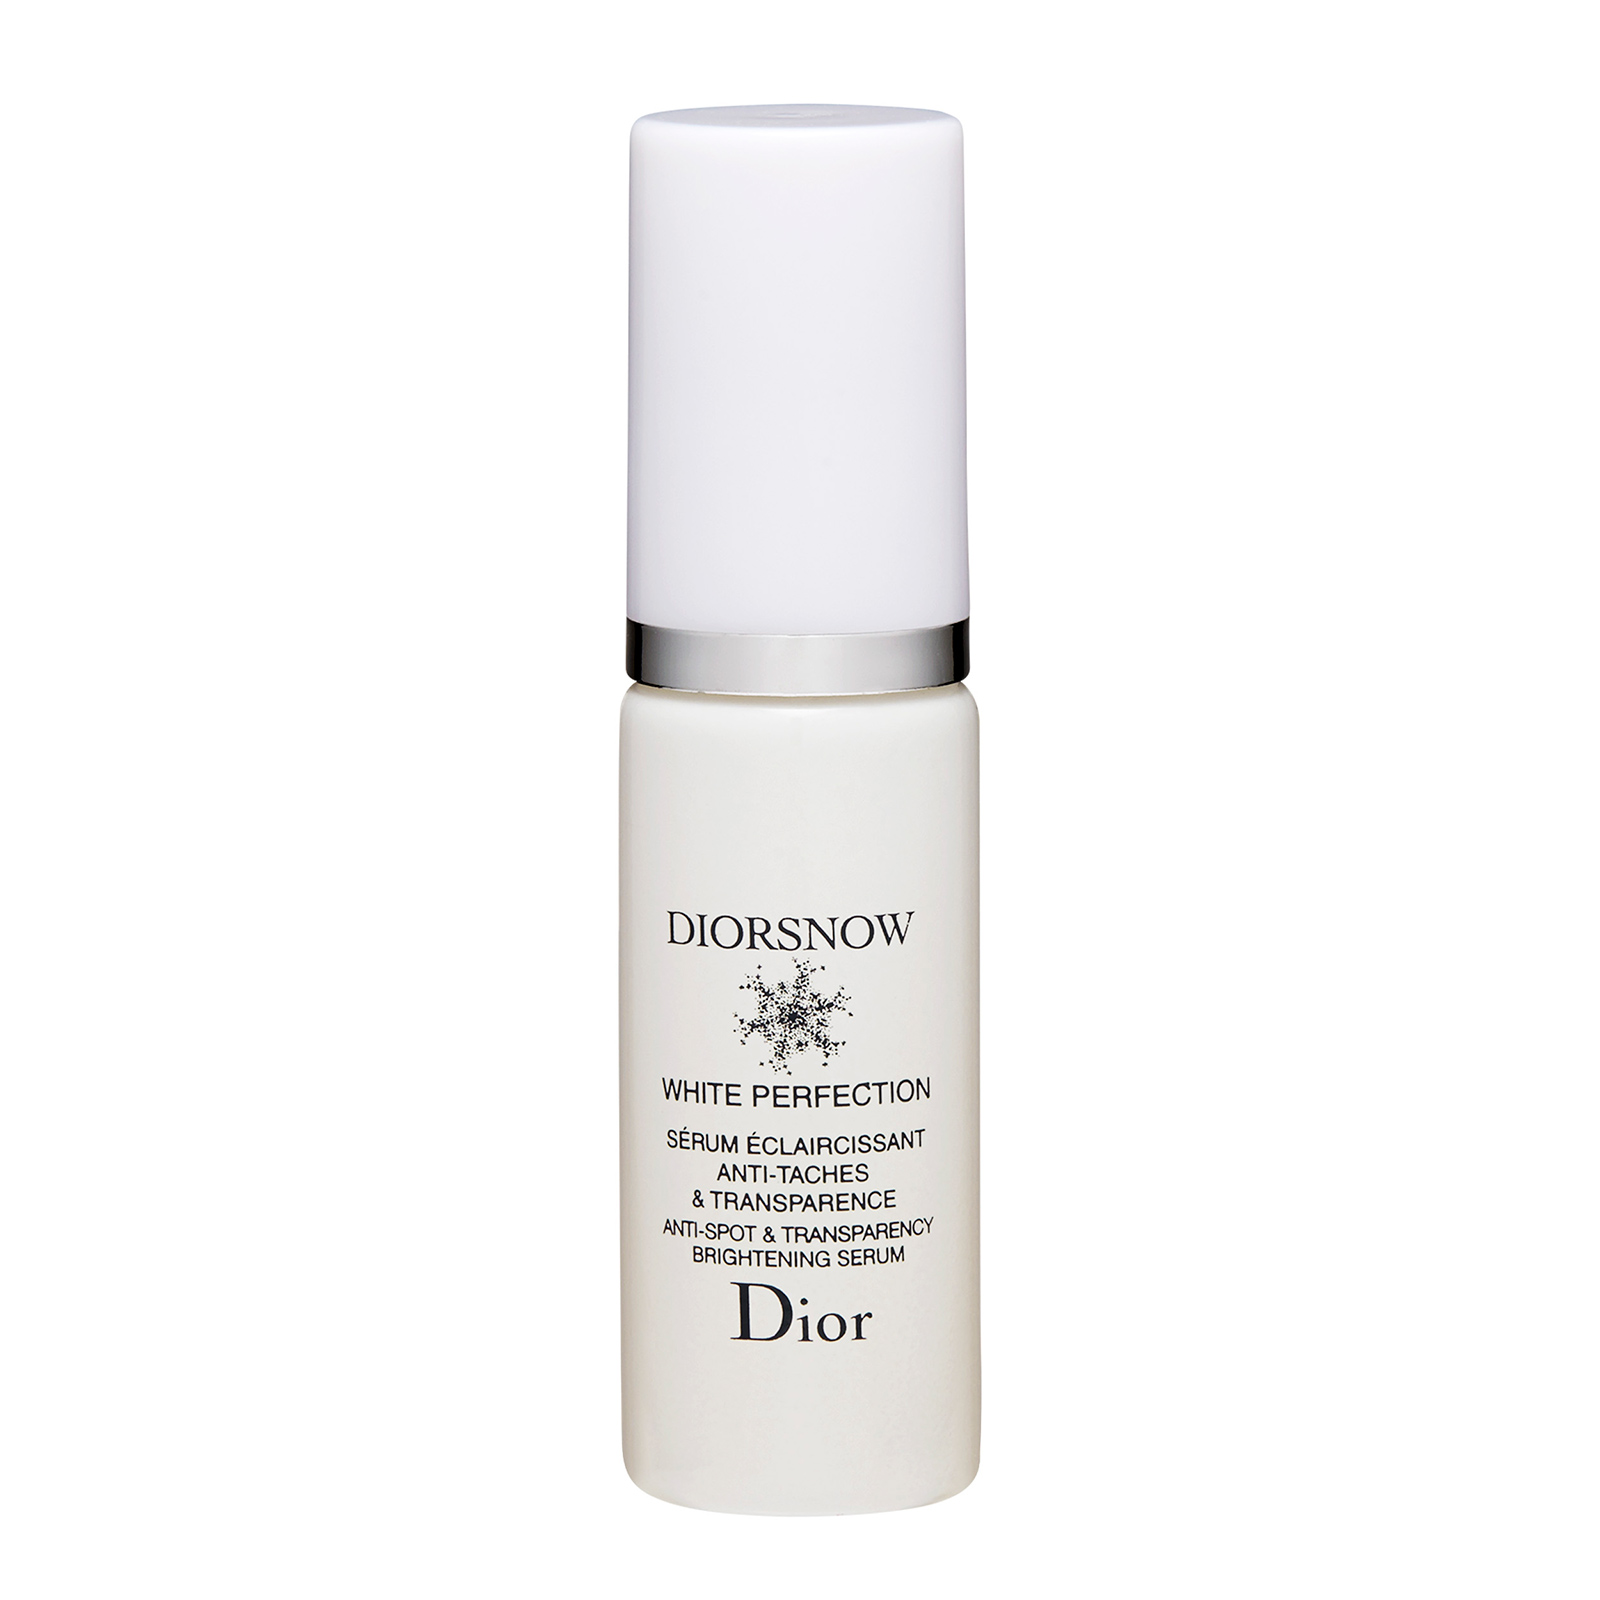 Christian Dior DiorSnow White Perfection Anti-Spot & Transparency Brightening Serum 0.23oz, 7ml (sample/ 試用裝)